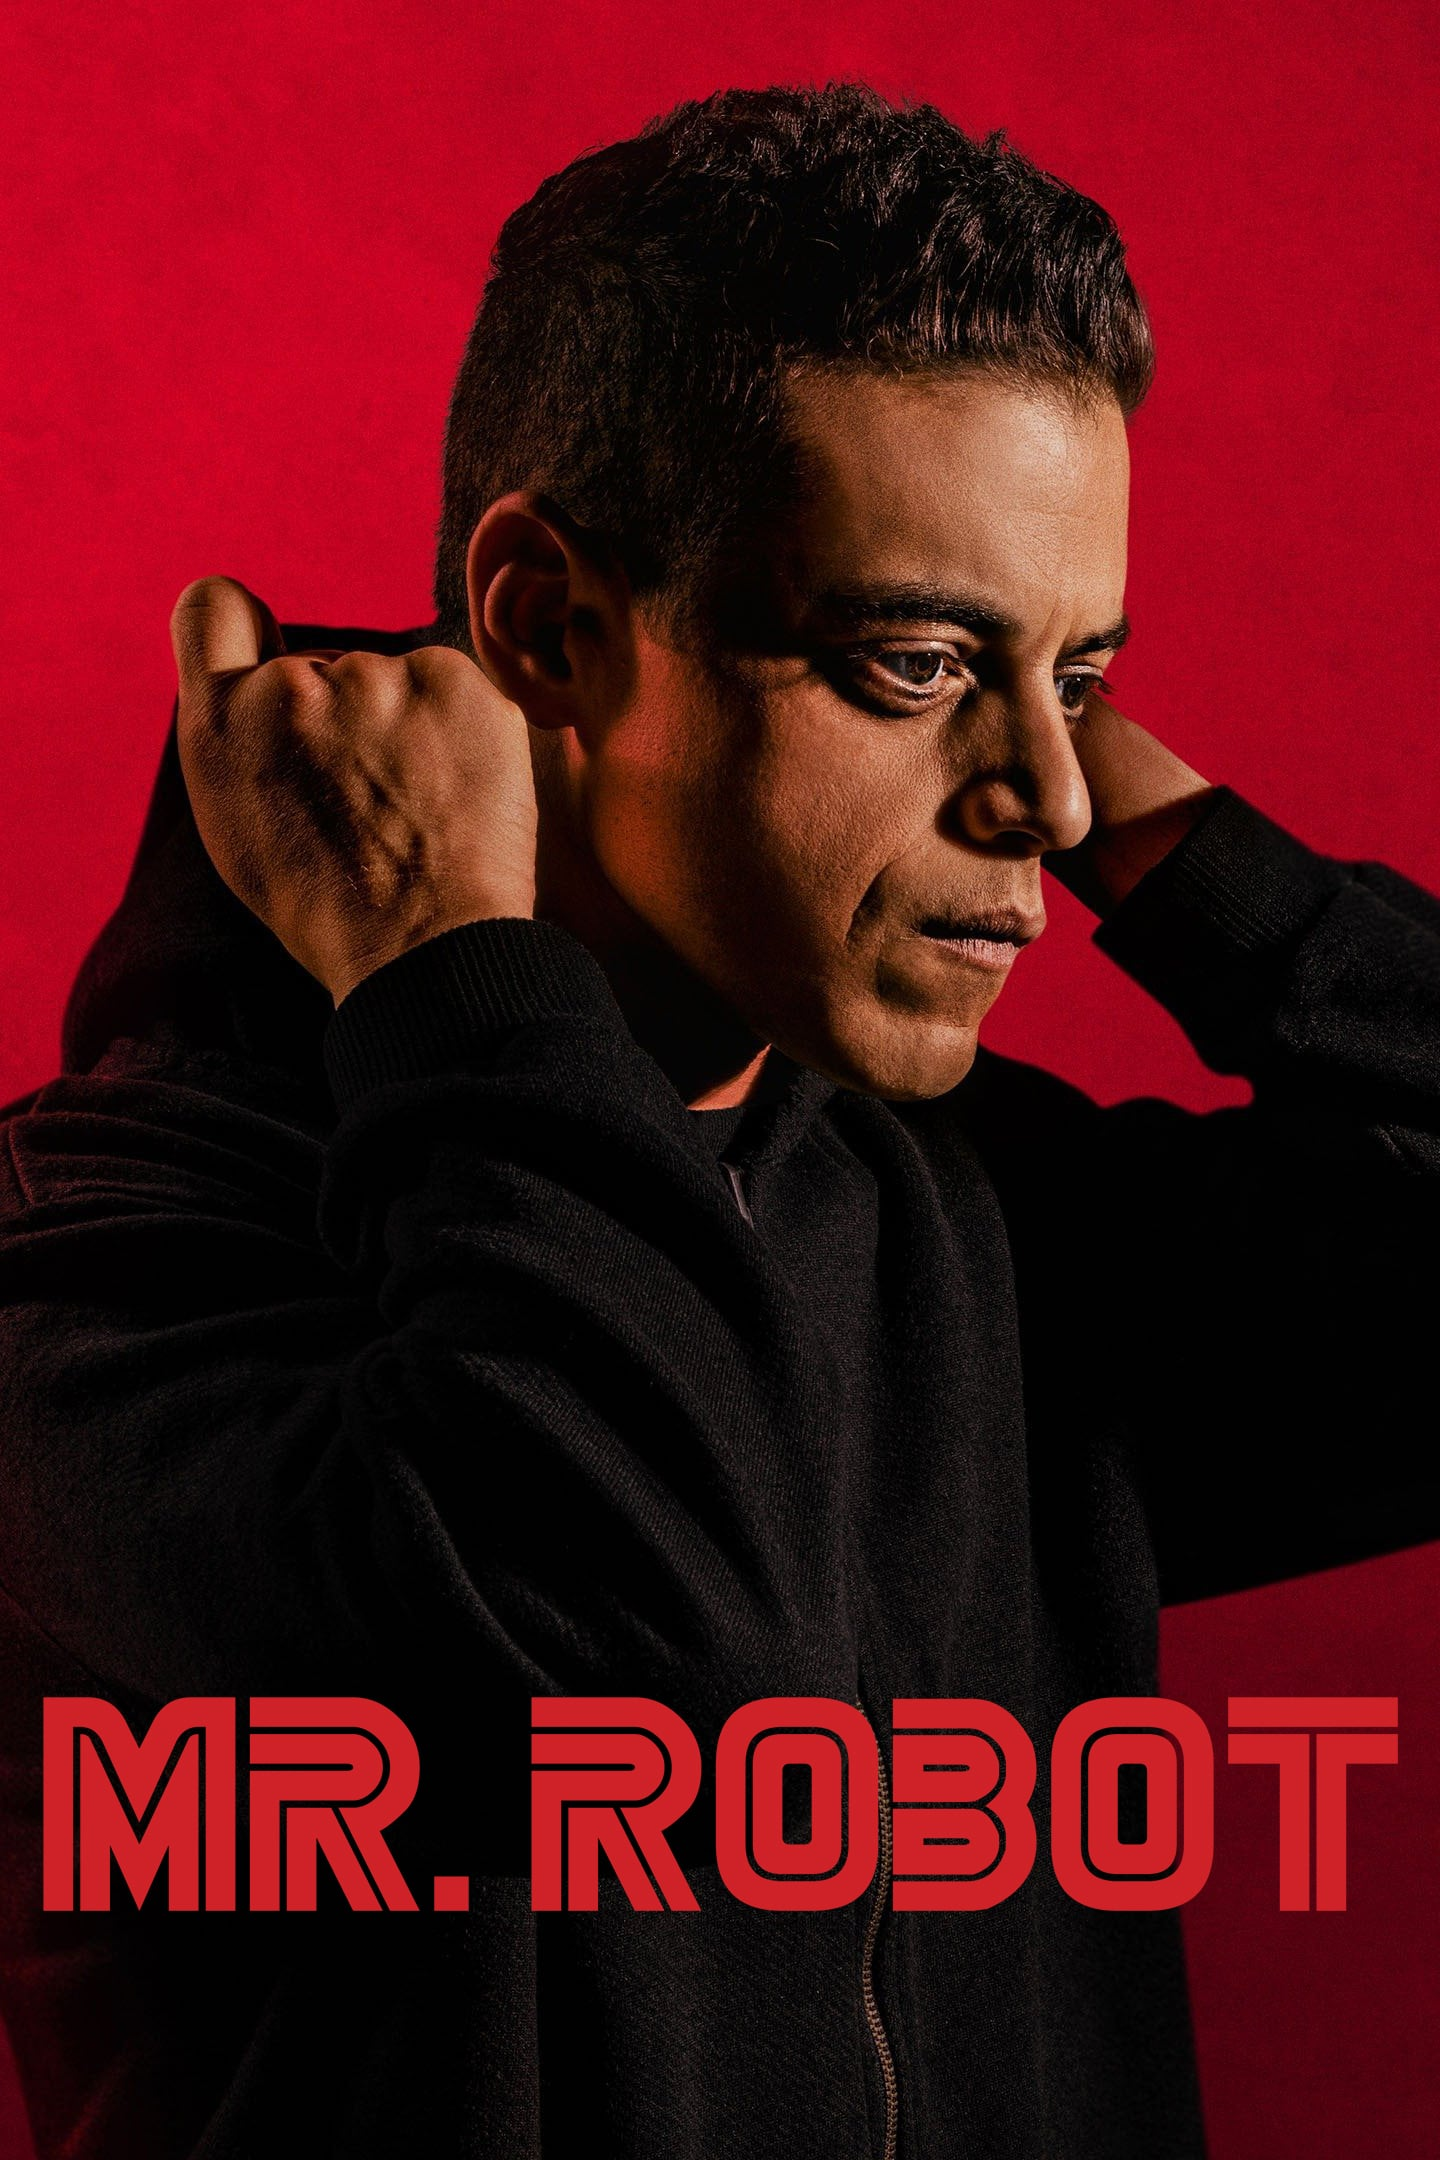 Mr. Robot' Series Finale Ends With One Last Game-Changing Twist